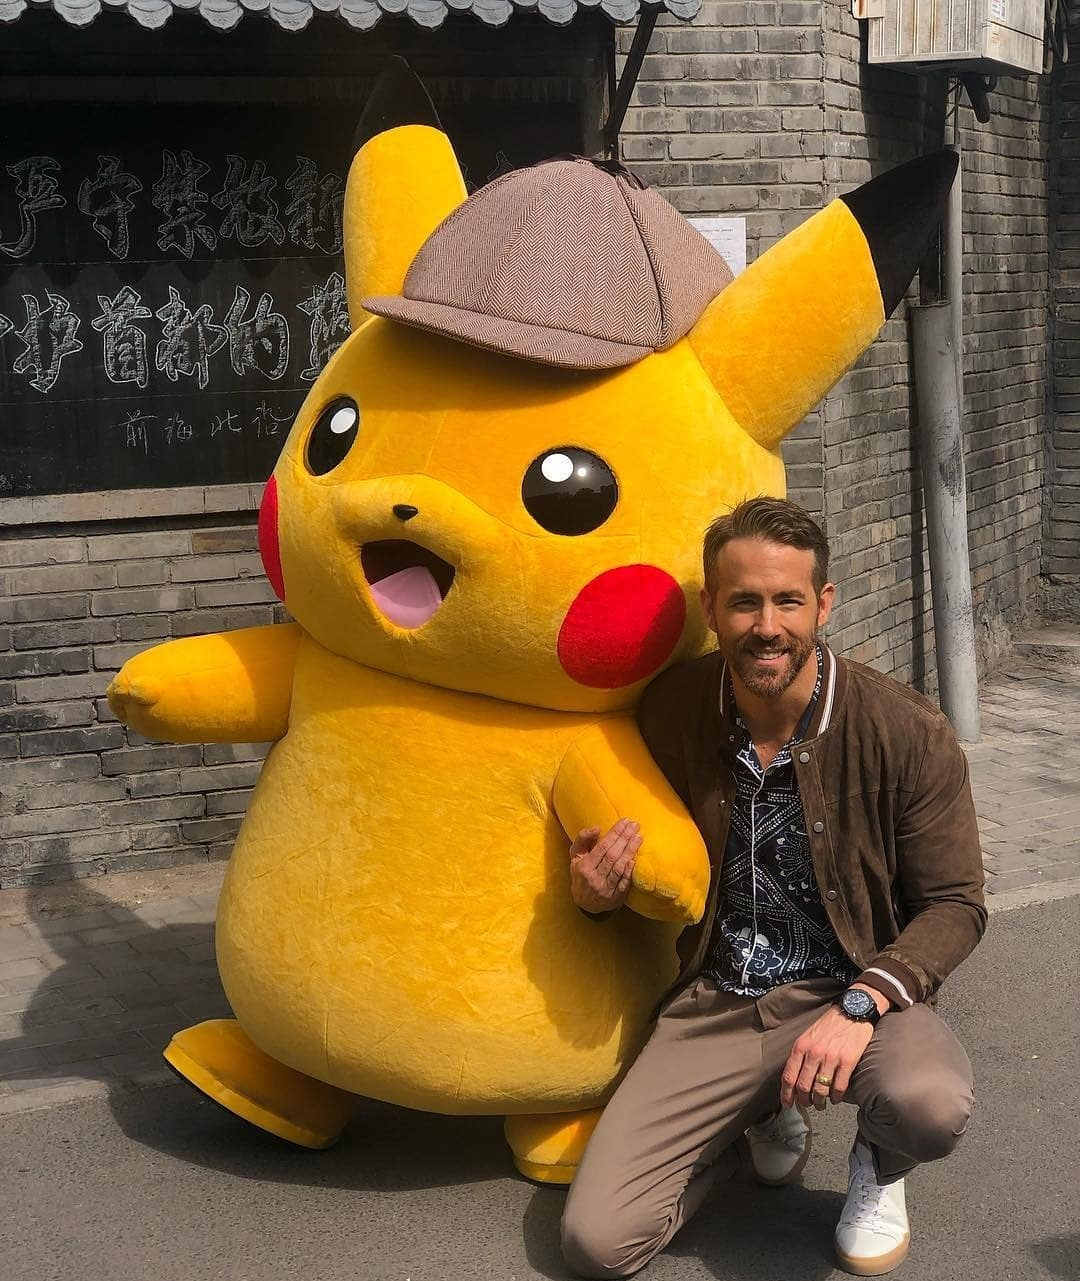 Photo of El film 'Detective Pikachu' sigue dando buena impresión